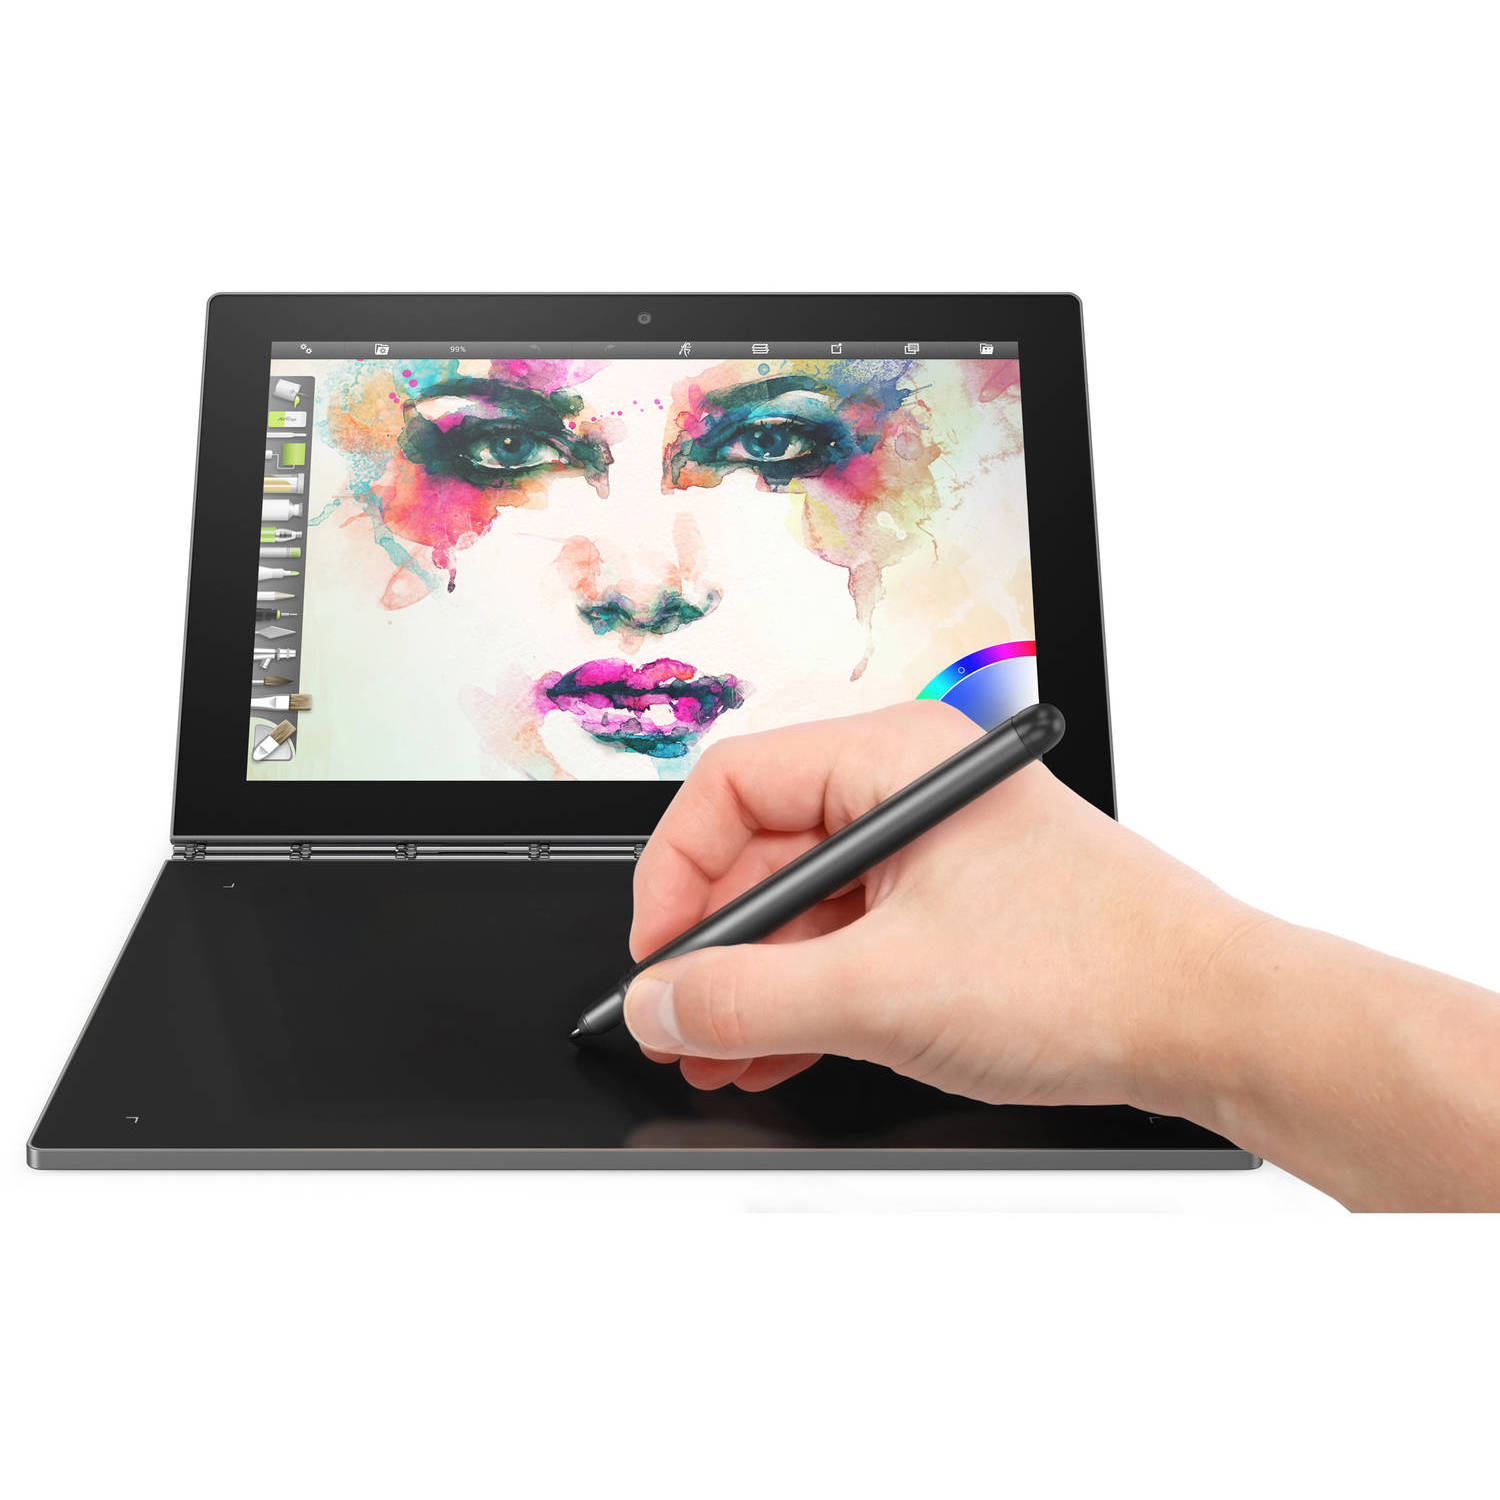 "Lenovo Yoga Book with WiFi 10.1"" Touchscreen Tablet PC Featuring Android 6.0.1 (Marshmallow) Operating"